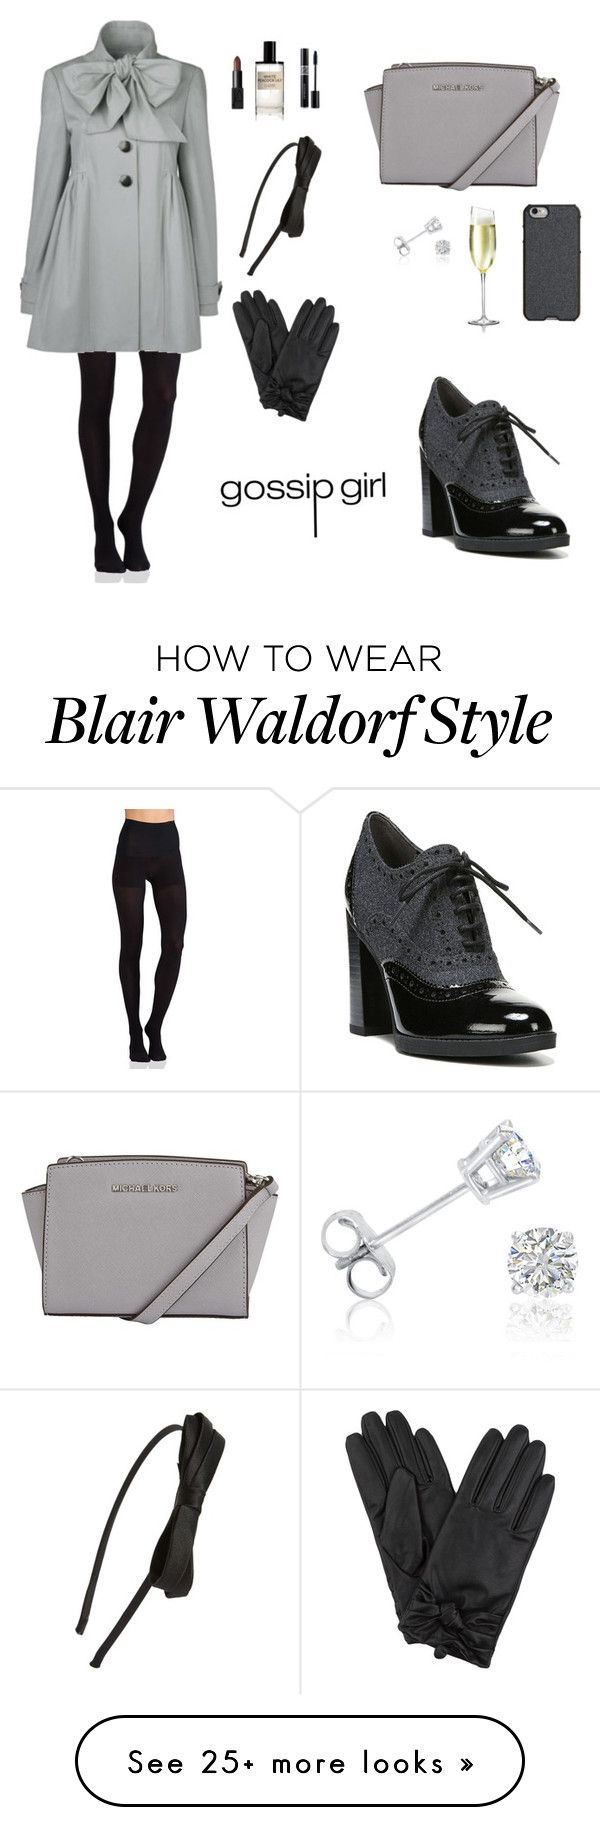 """BLAIR WALDORF INSPIRED LOOK"" by twyzter on Polyvore featuring Commando, Franco Sarto, NARS Cosmetics, Christian Dior, Tasha, D.S. & DURGA, Agent 18 and Amanda Rose Collection"